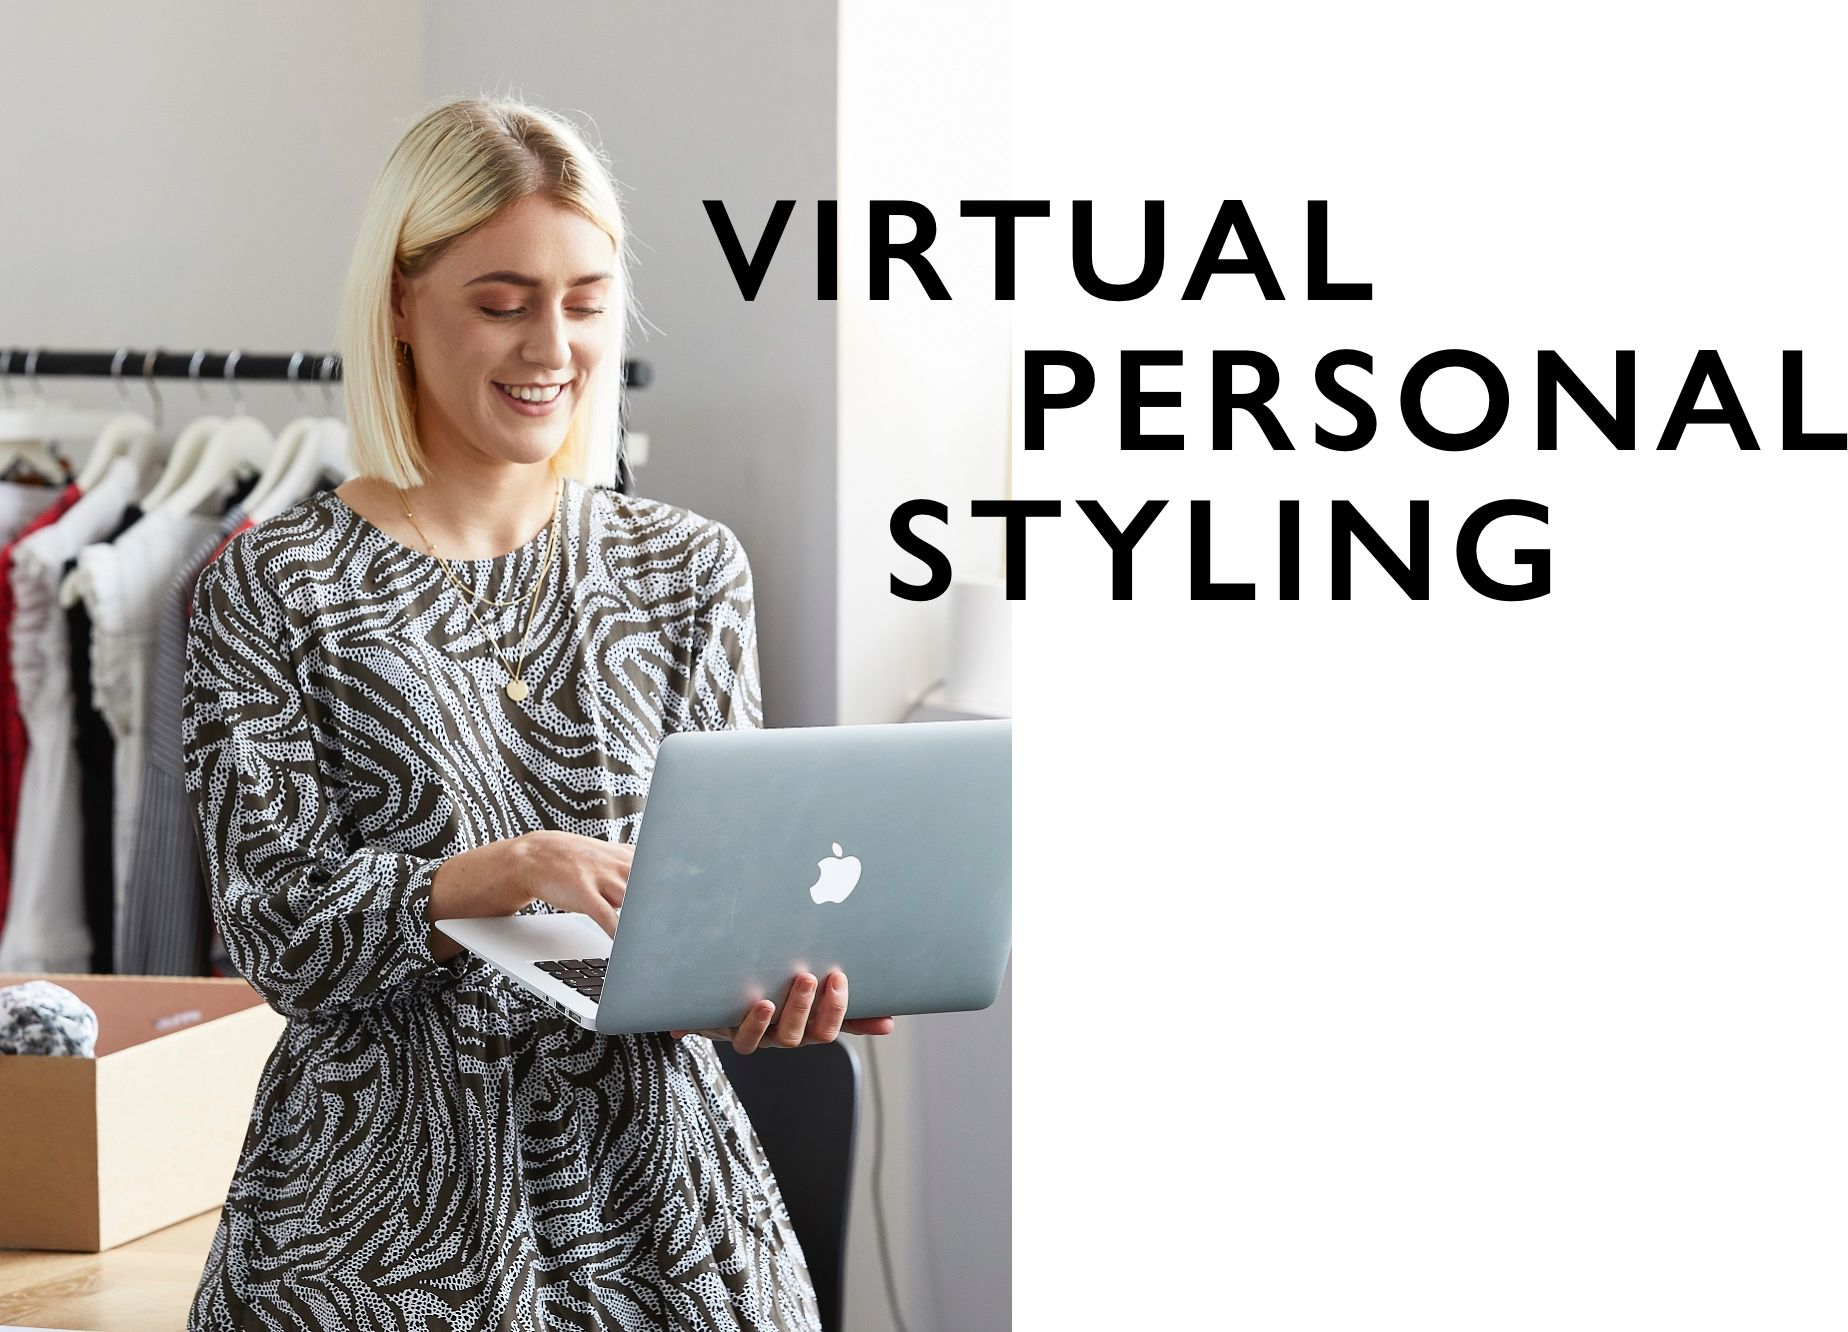 A Personal Stylist surrounded by clothing holding her laptop